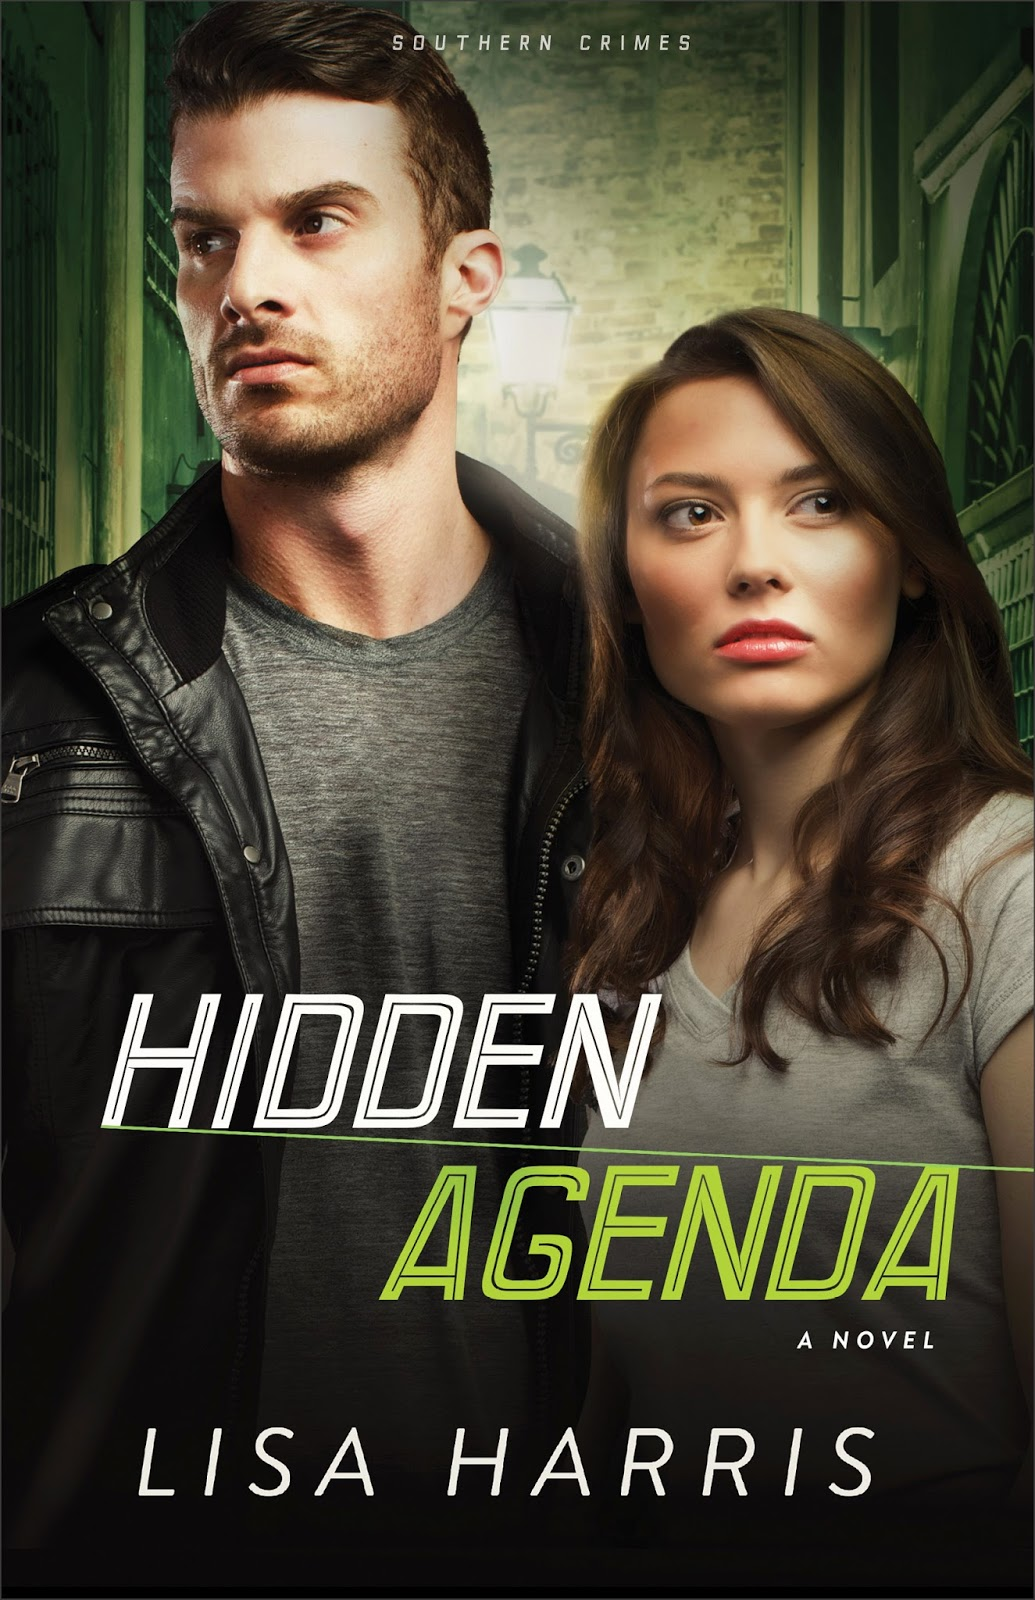 Hidden Agenda (Southern Crimes, Book 3) by Lisa Harris